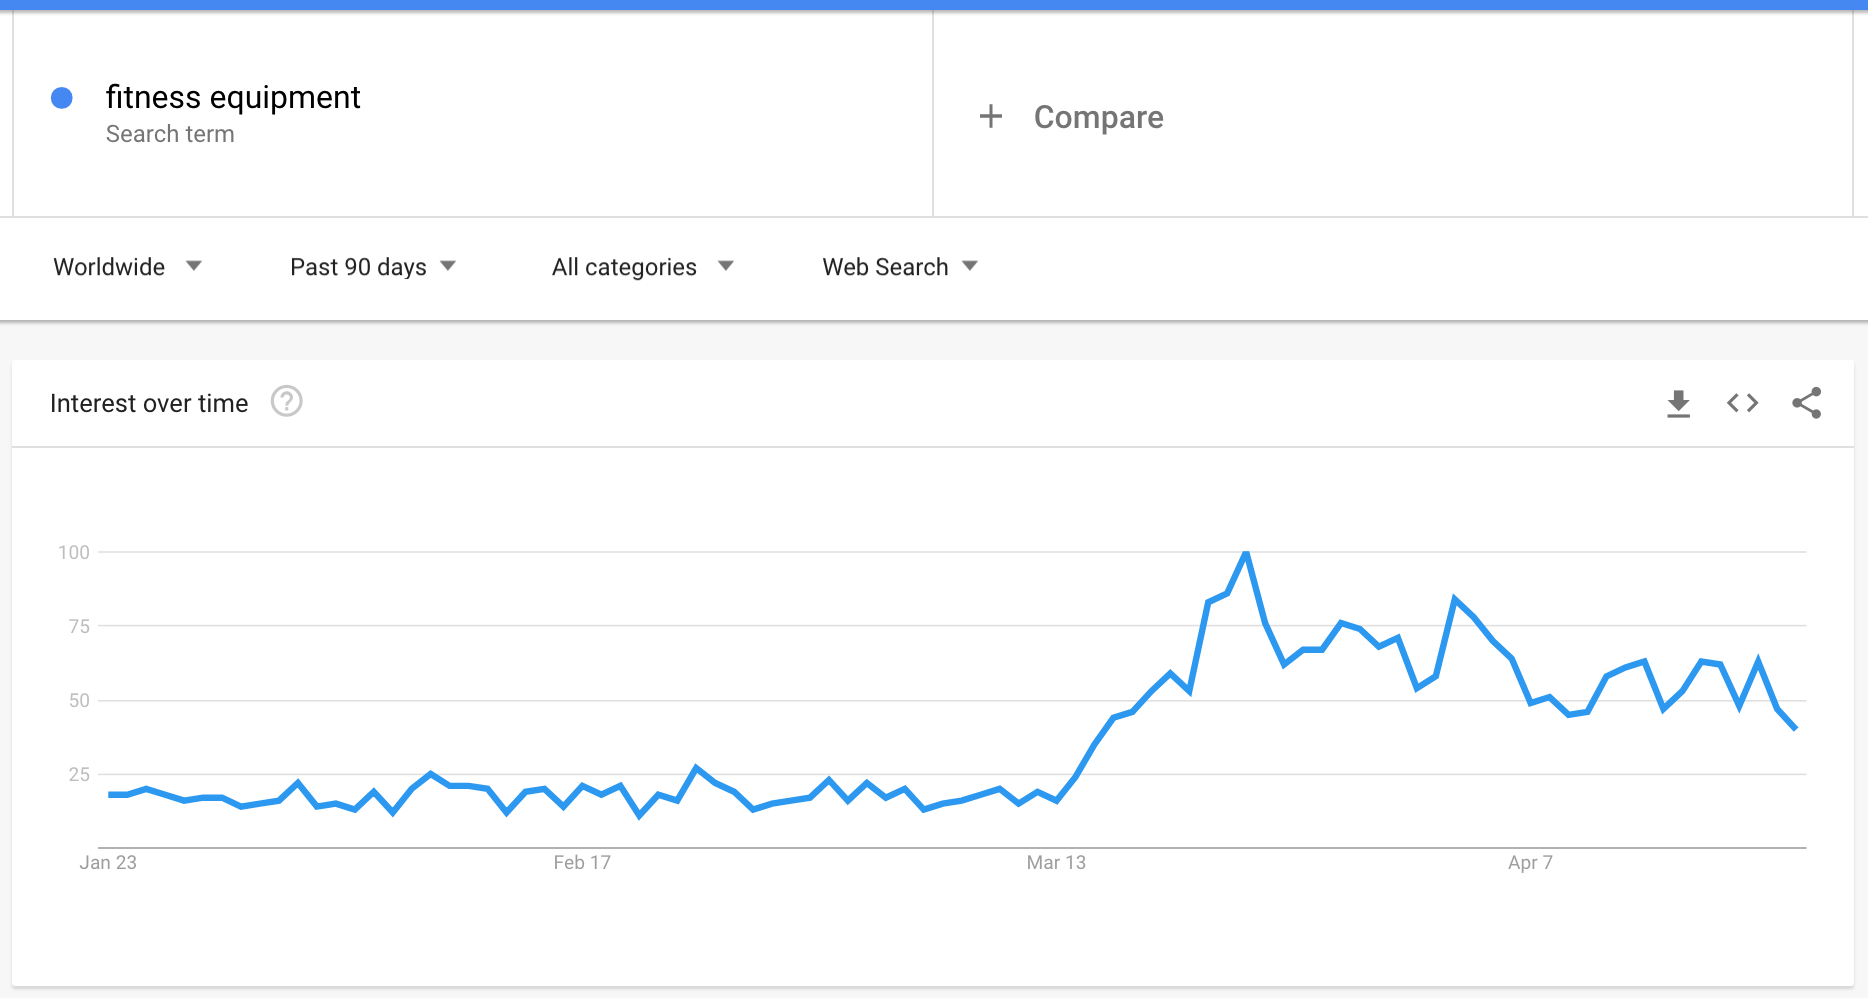 fitness-equipment-google-trends